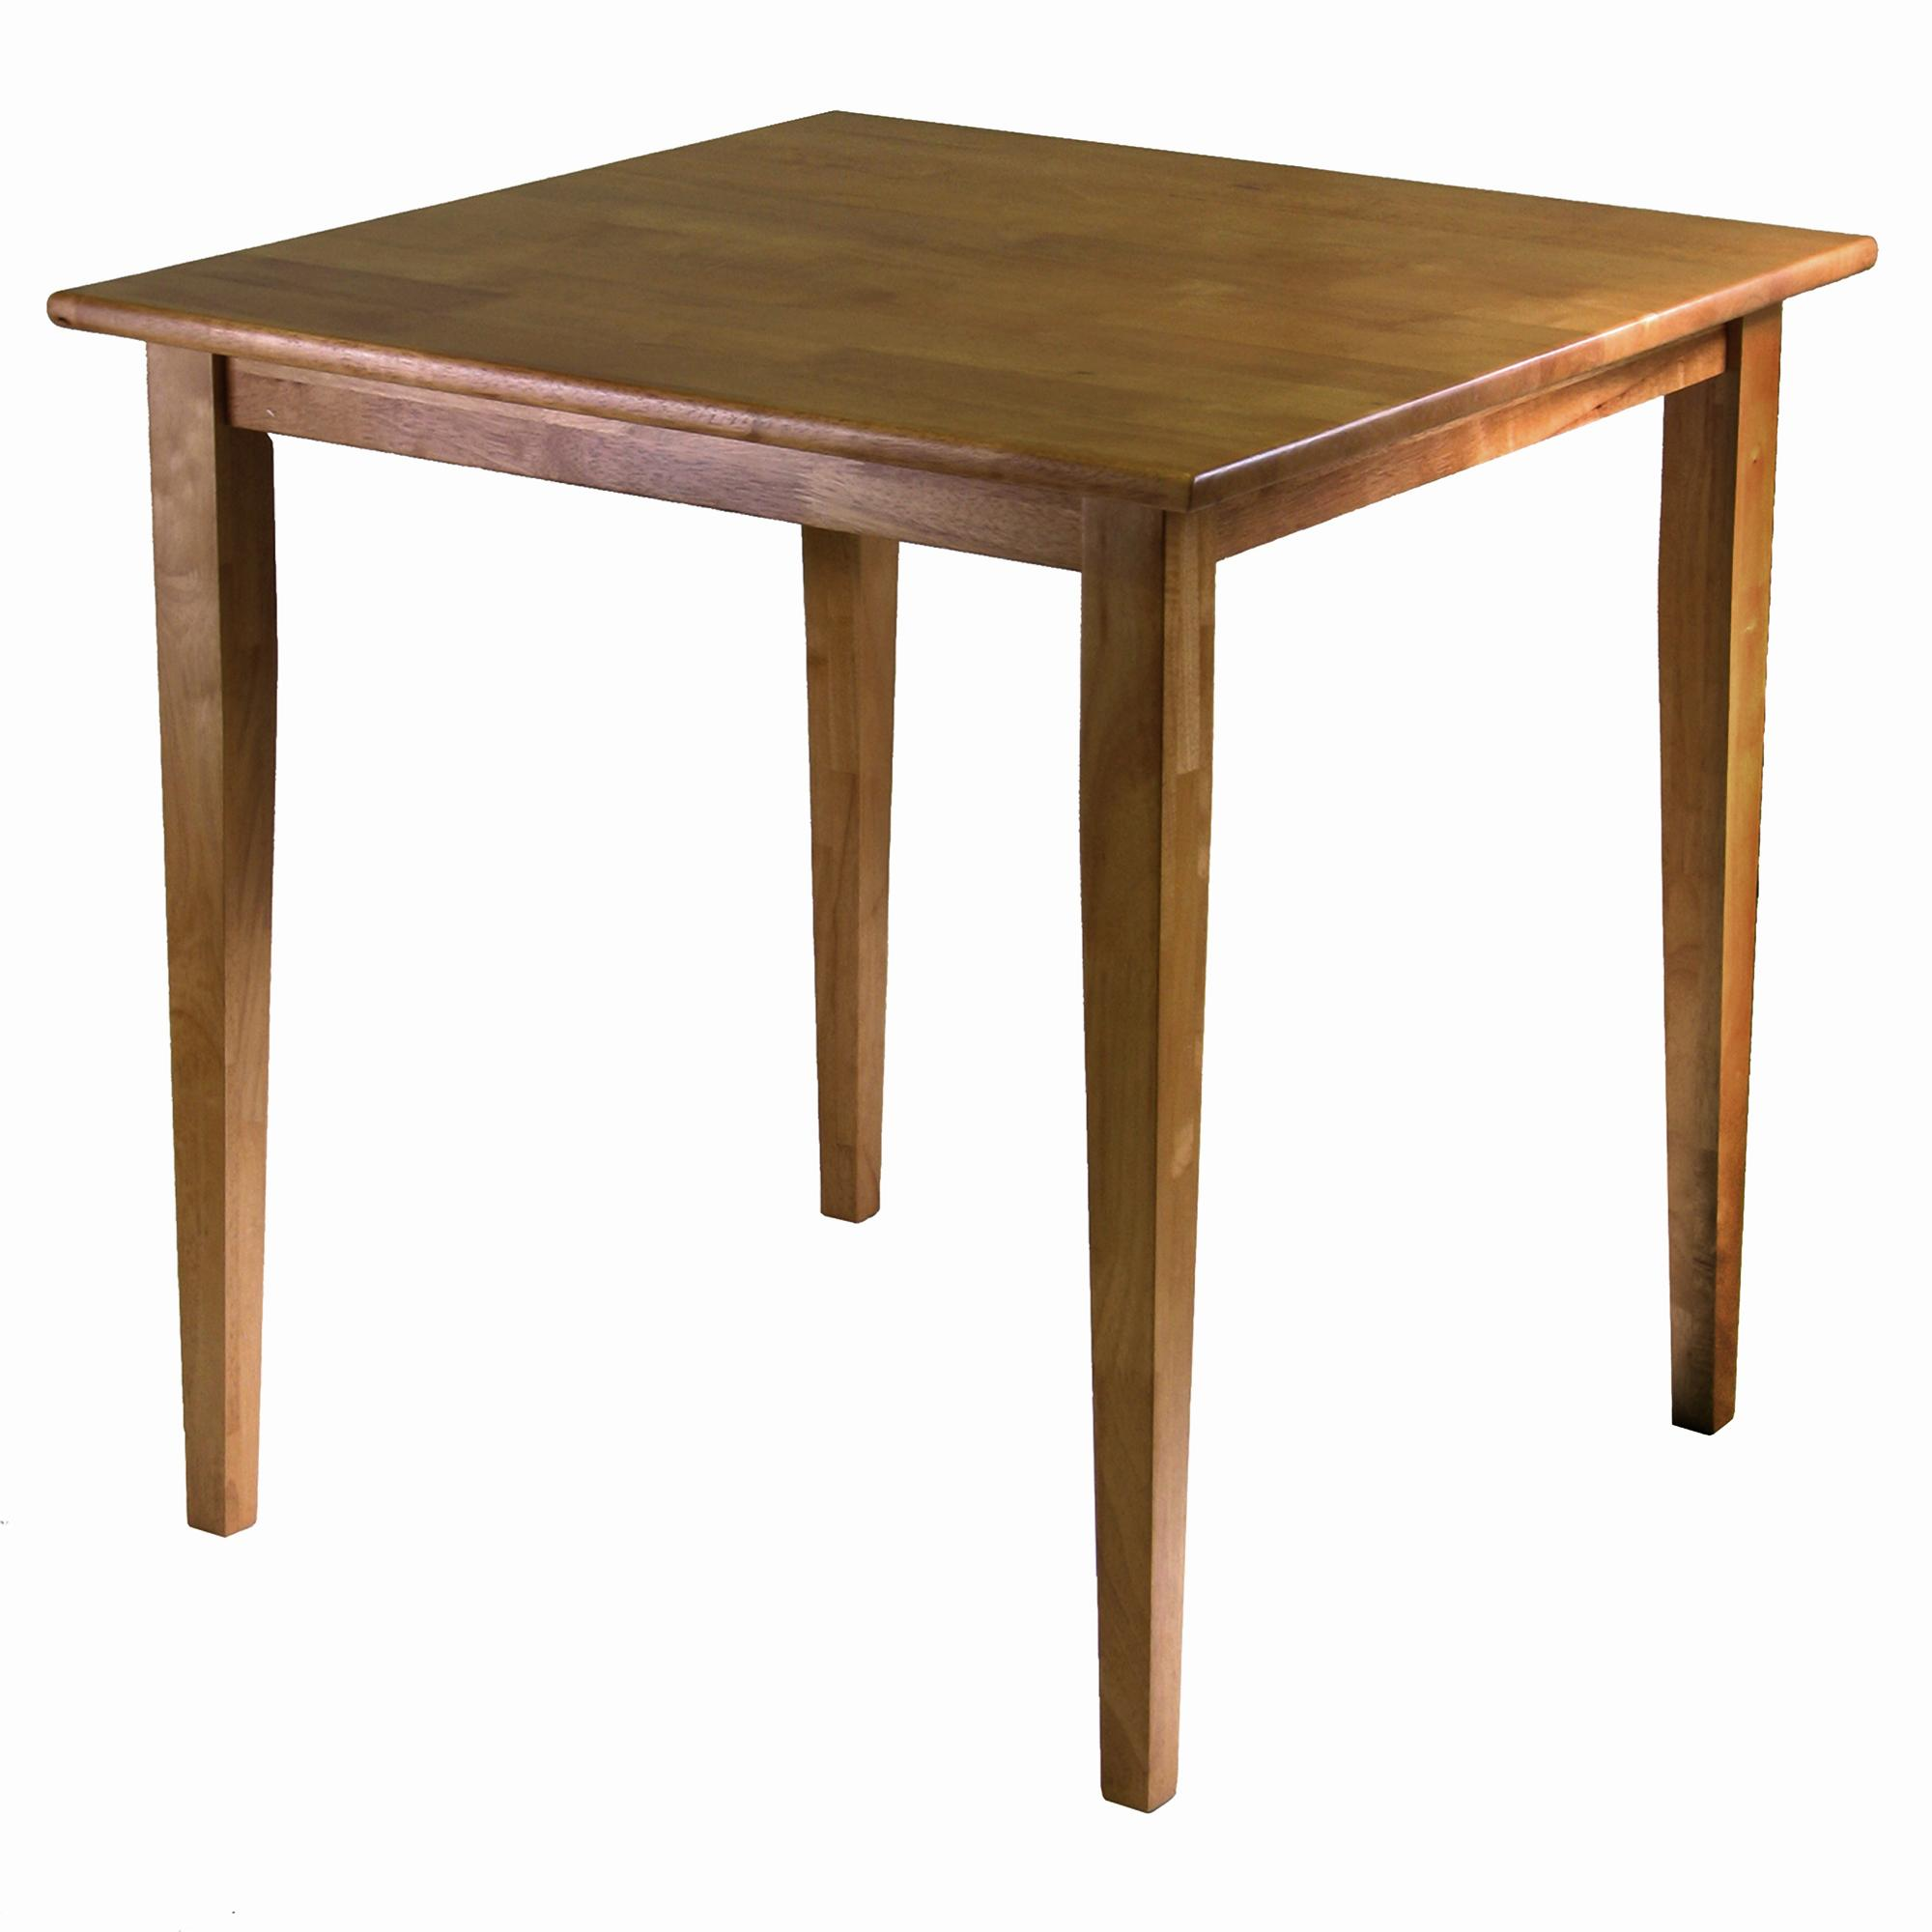 Square Dining Table With Bench: Winsome Wood Groveland Square Dining Table